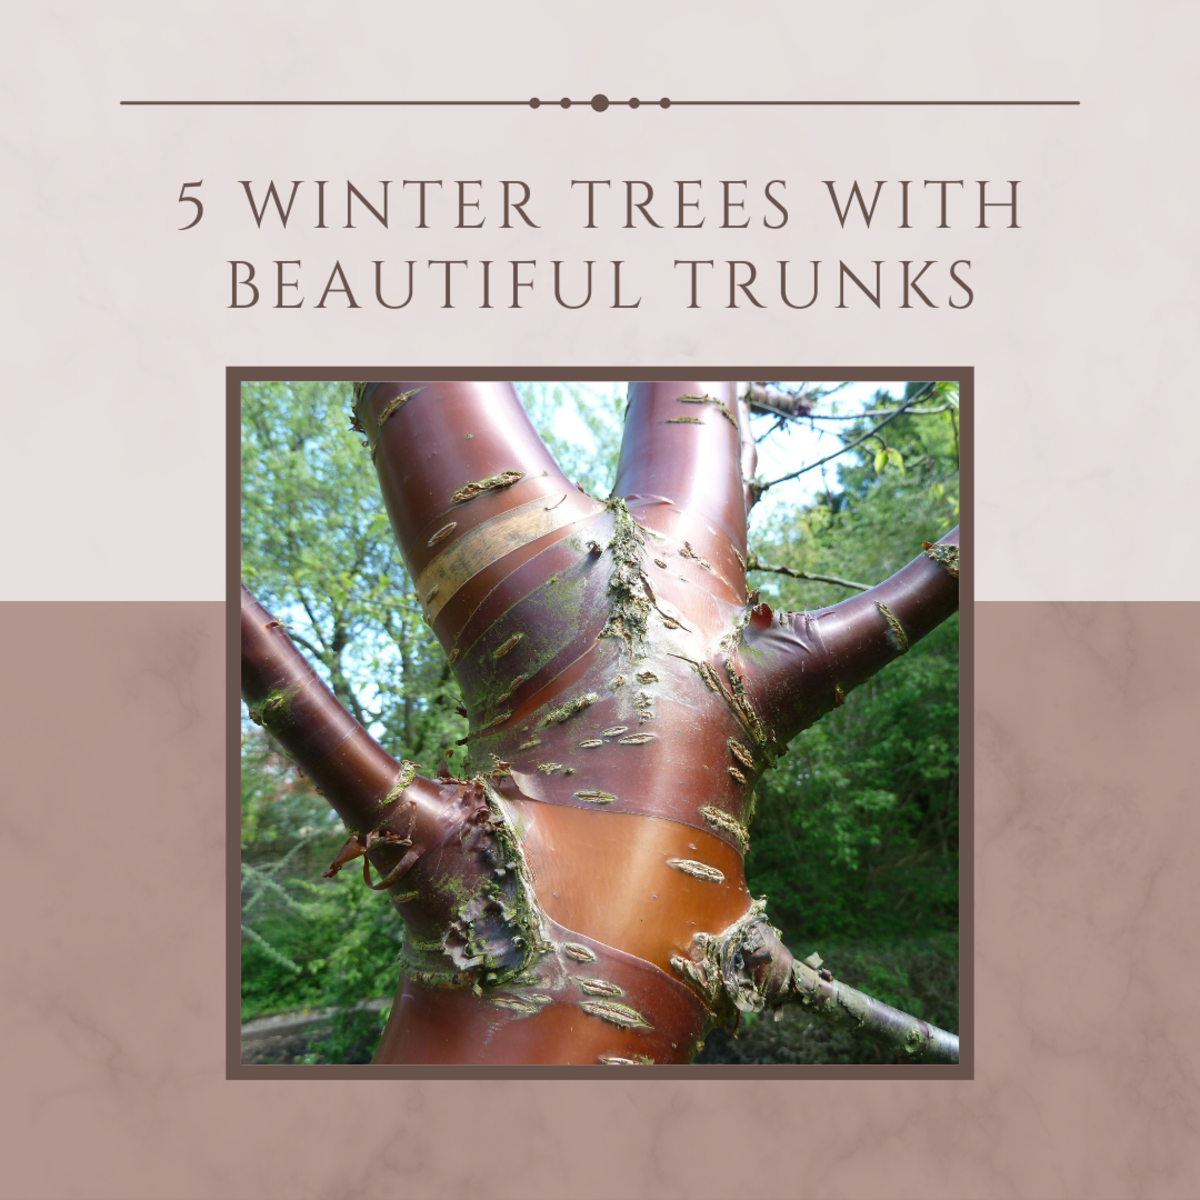 These five winter trees with gorgeous trunks are a great way to spruce up your garden!